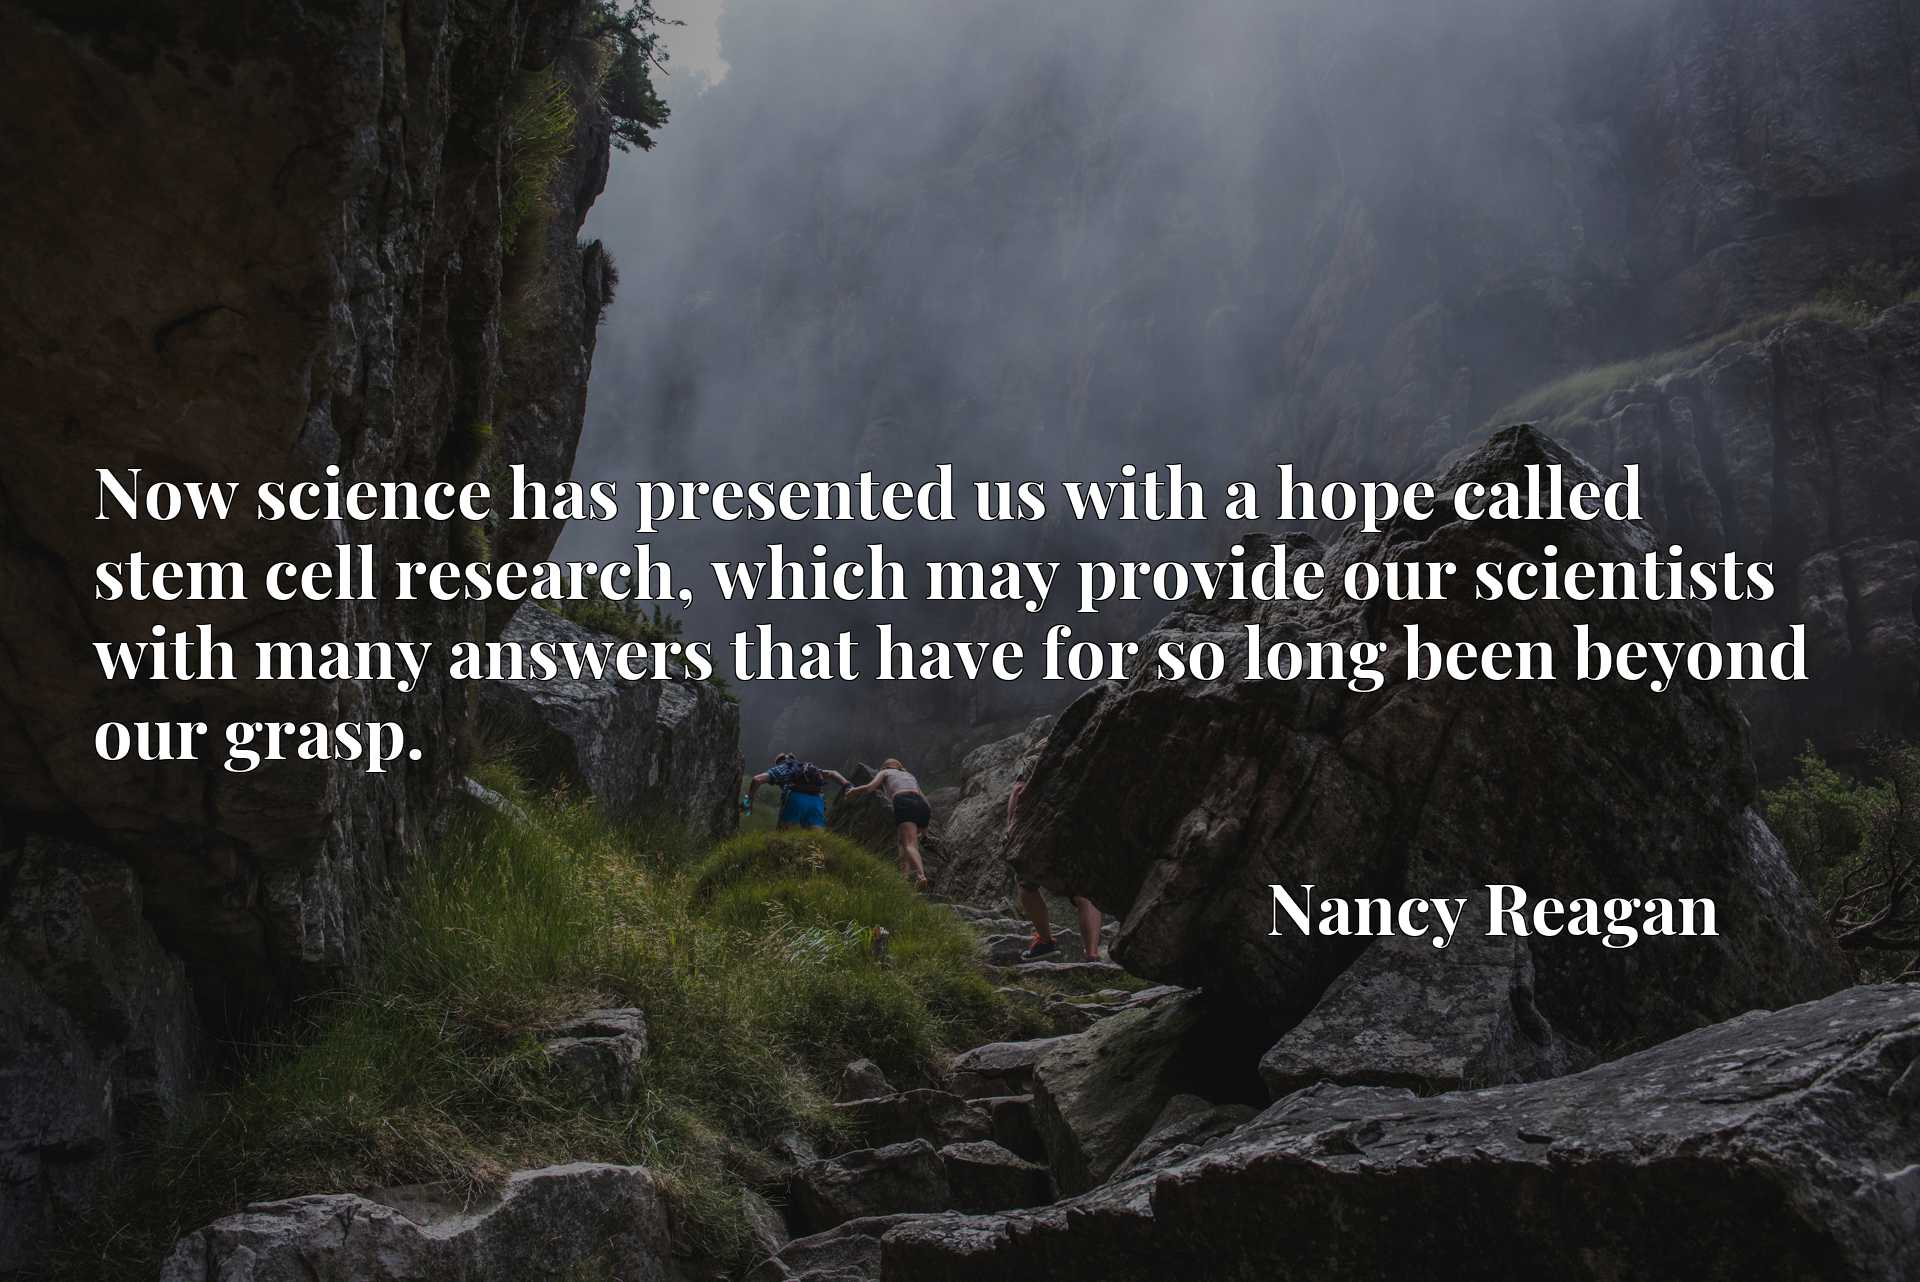 Now science has presented us with a hope called stem cell research, which may provide our scientists with many answers that have for so long been beyond our grasp.